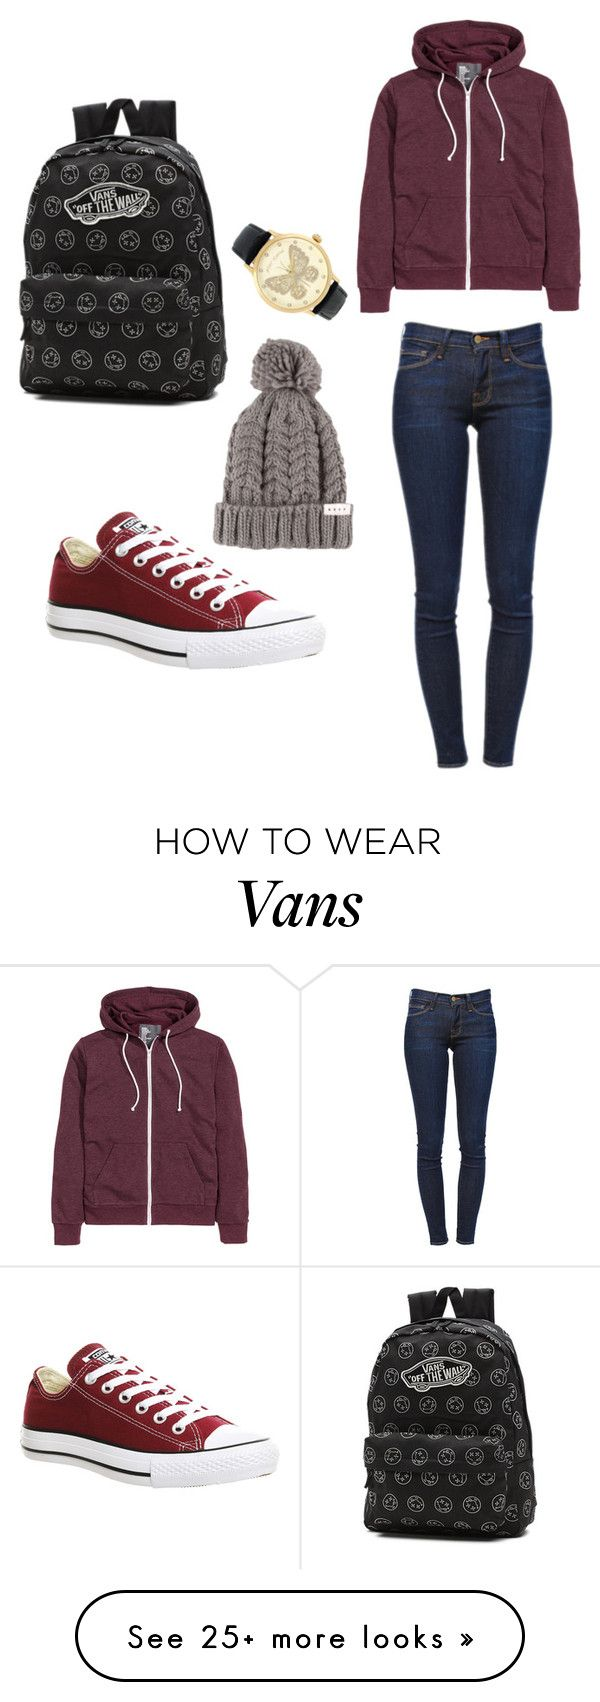 100+ How to wear vans ideas | how to